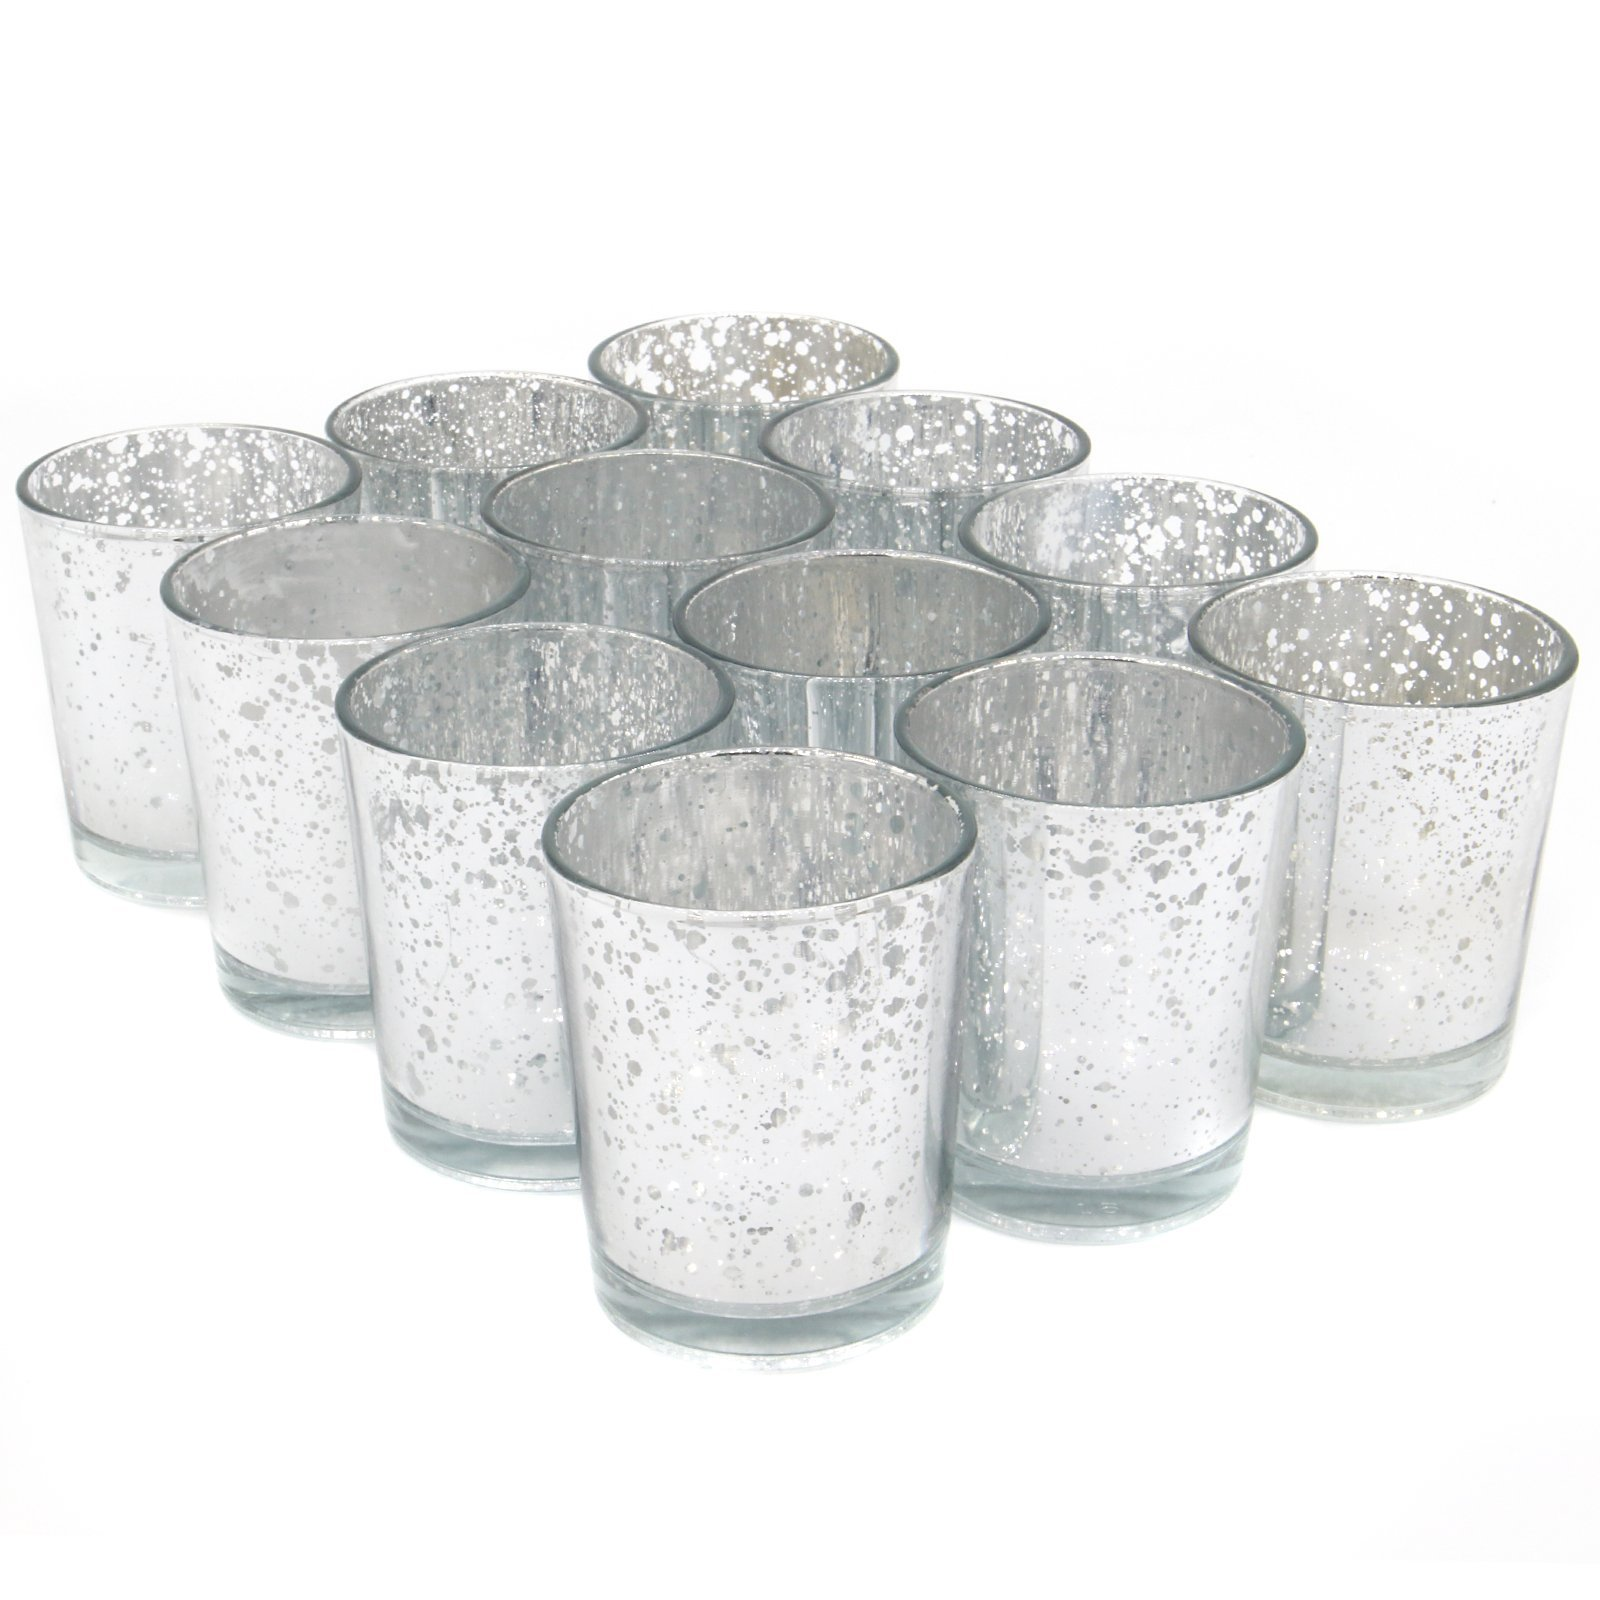 Set of 12 Speckled Tea Light Holders | Stylish Glass Candle Holders | Table & Home Decoration | Modern Home Accessories | M&W (Silver)